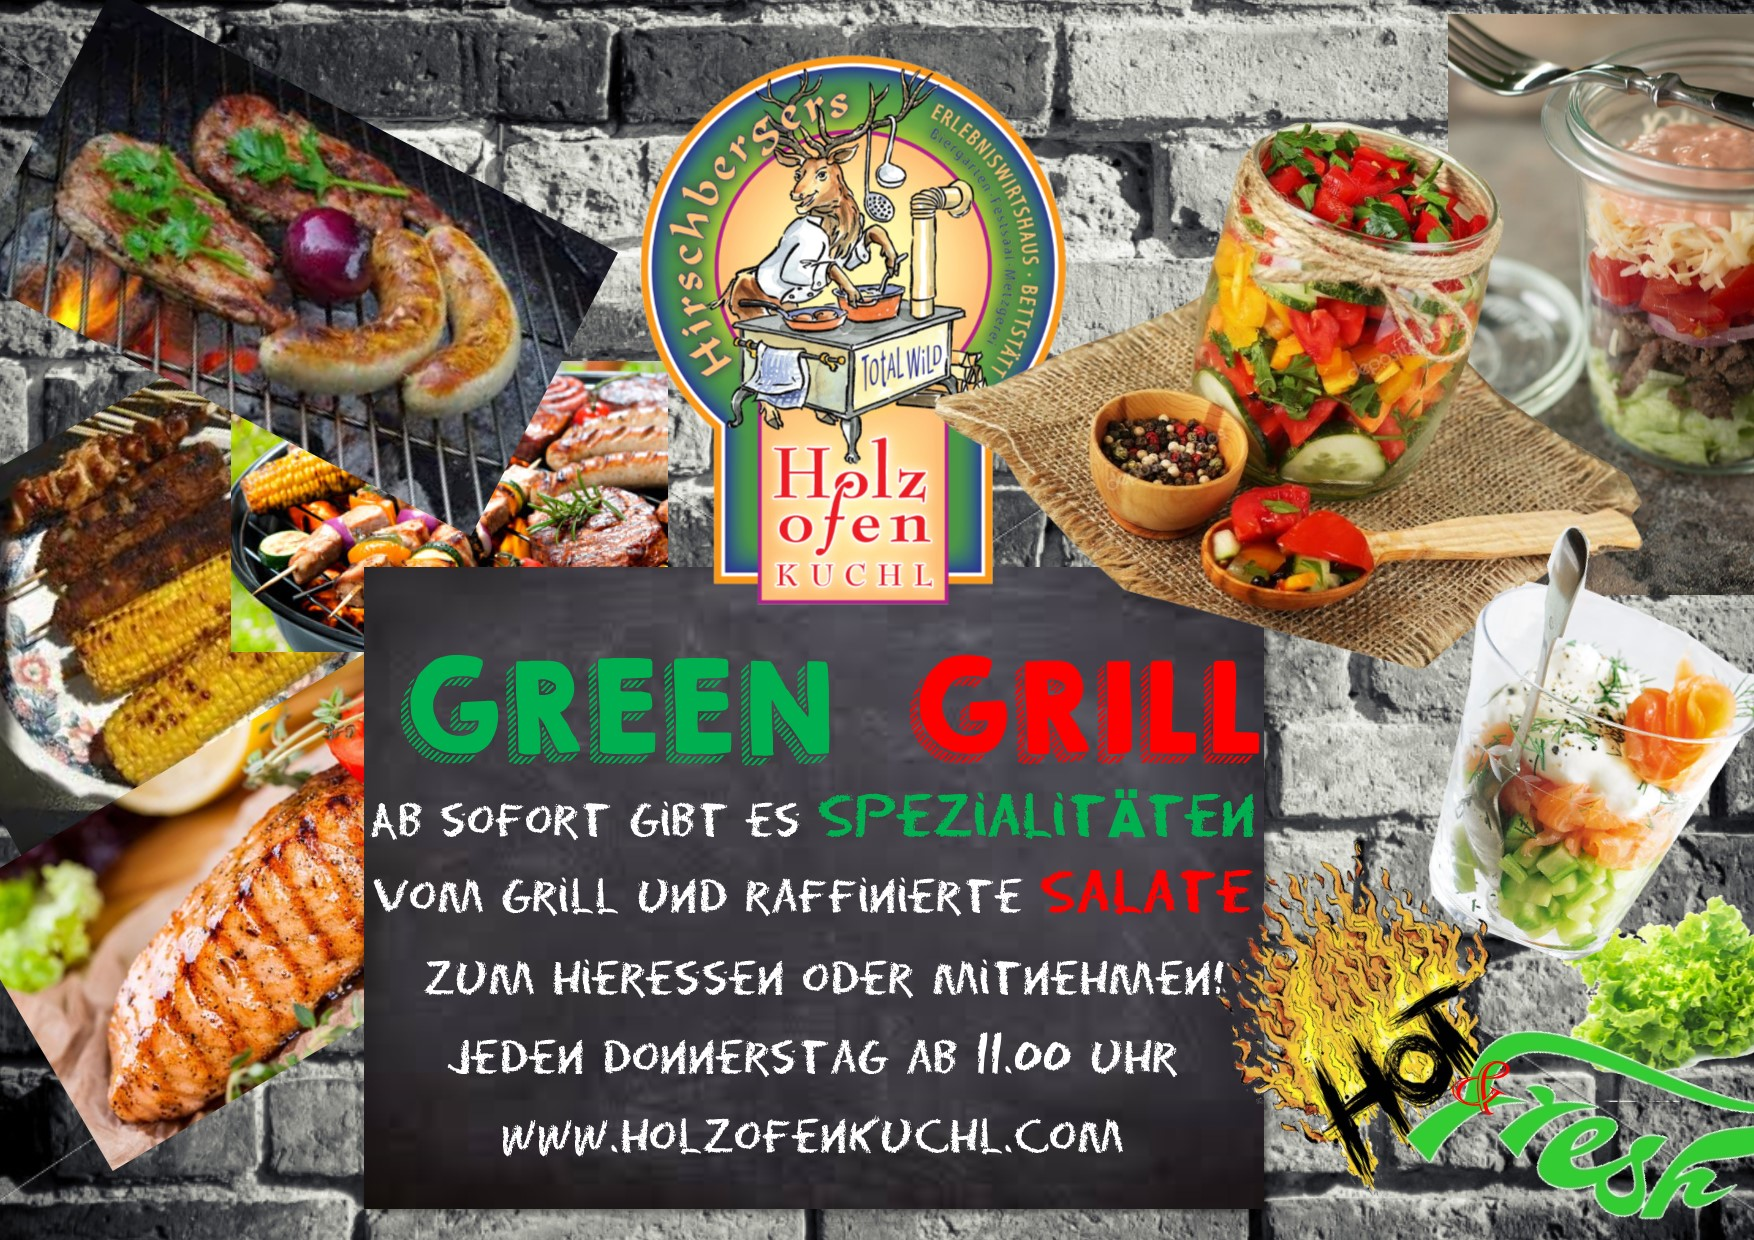 Green Grill - hot and fresh - coming soon